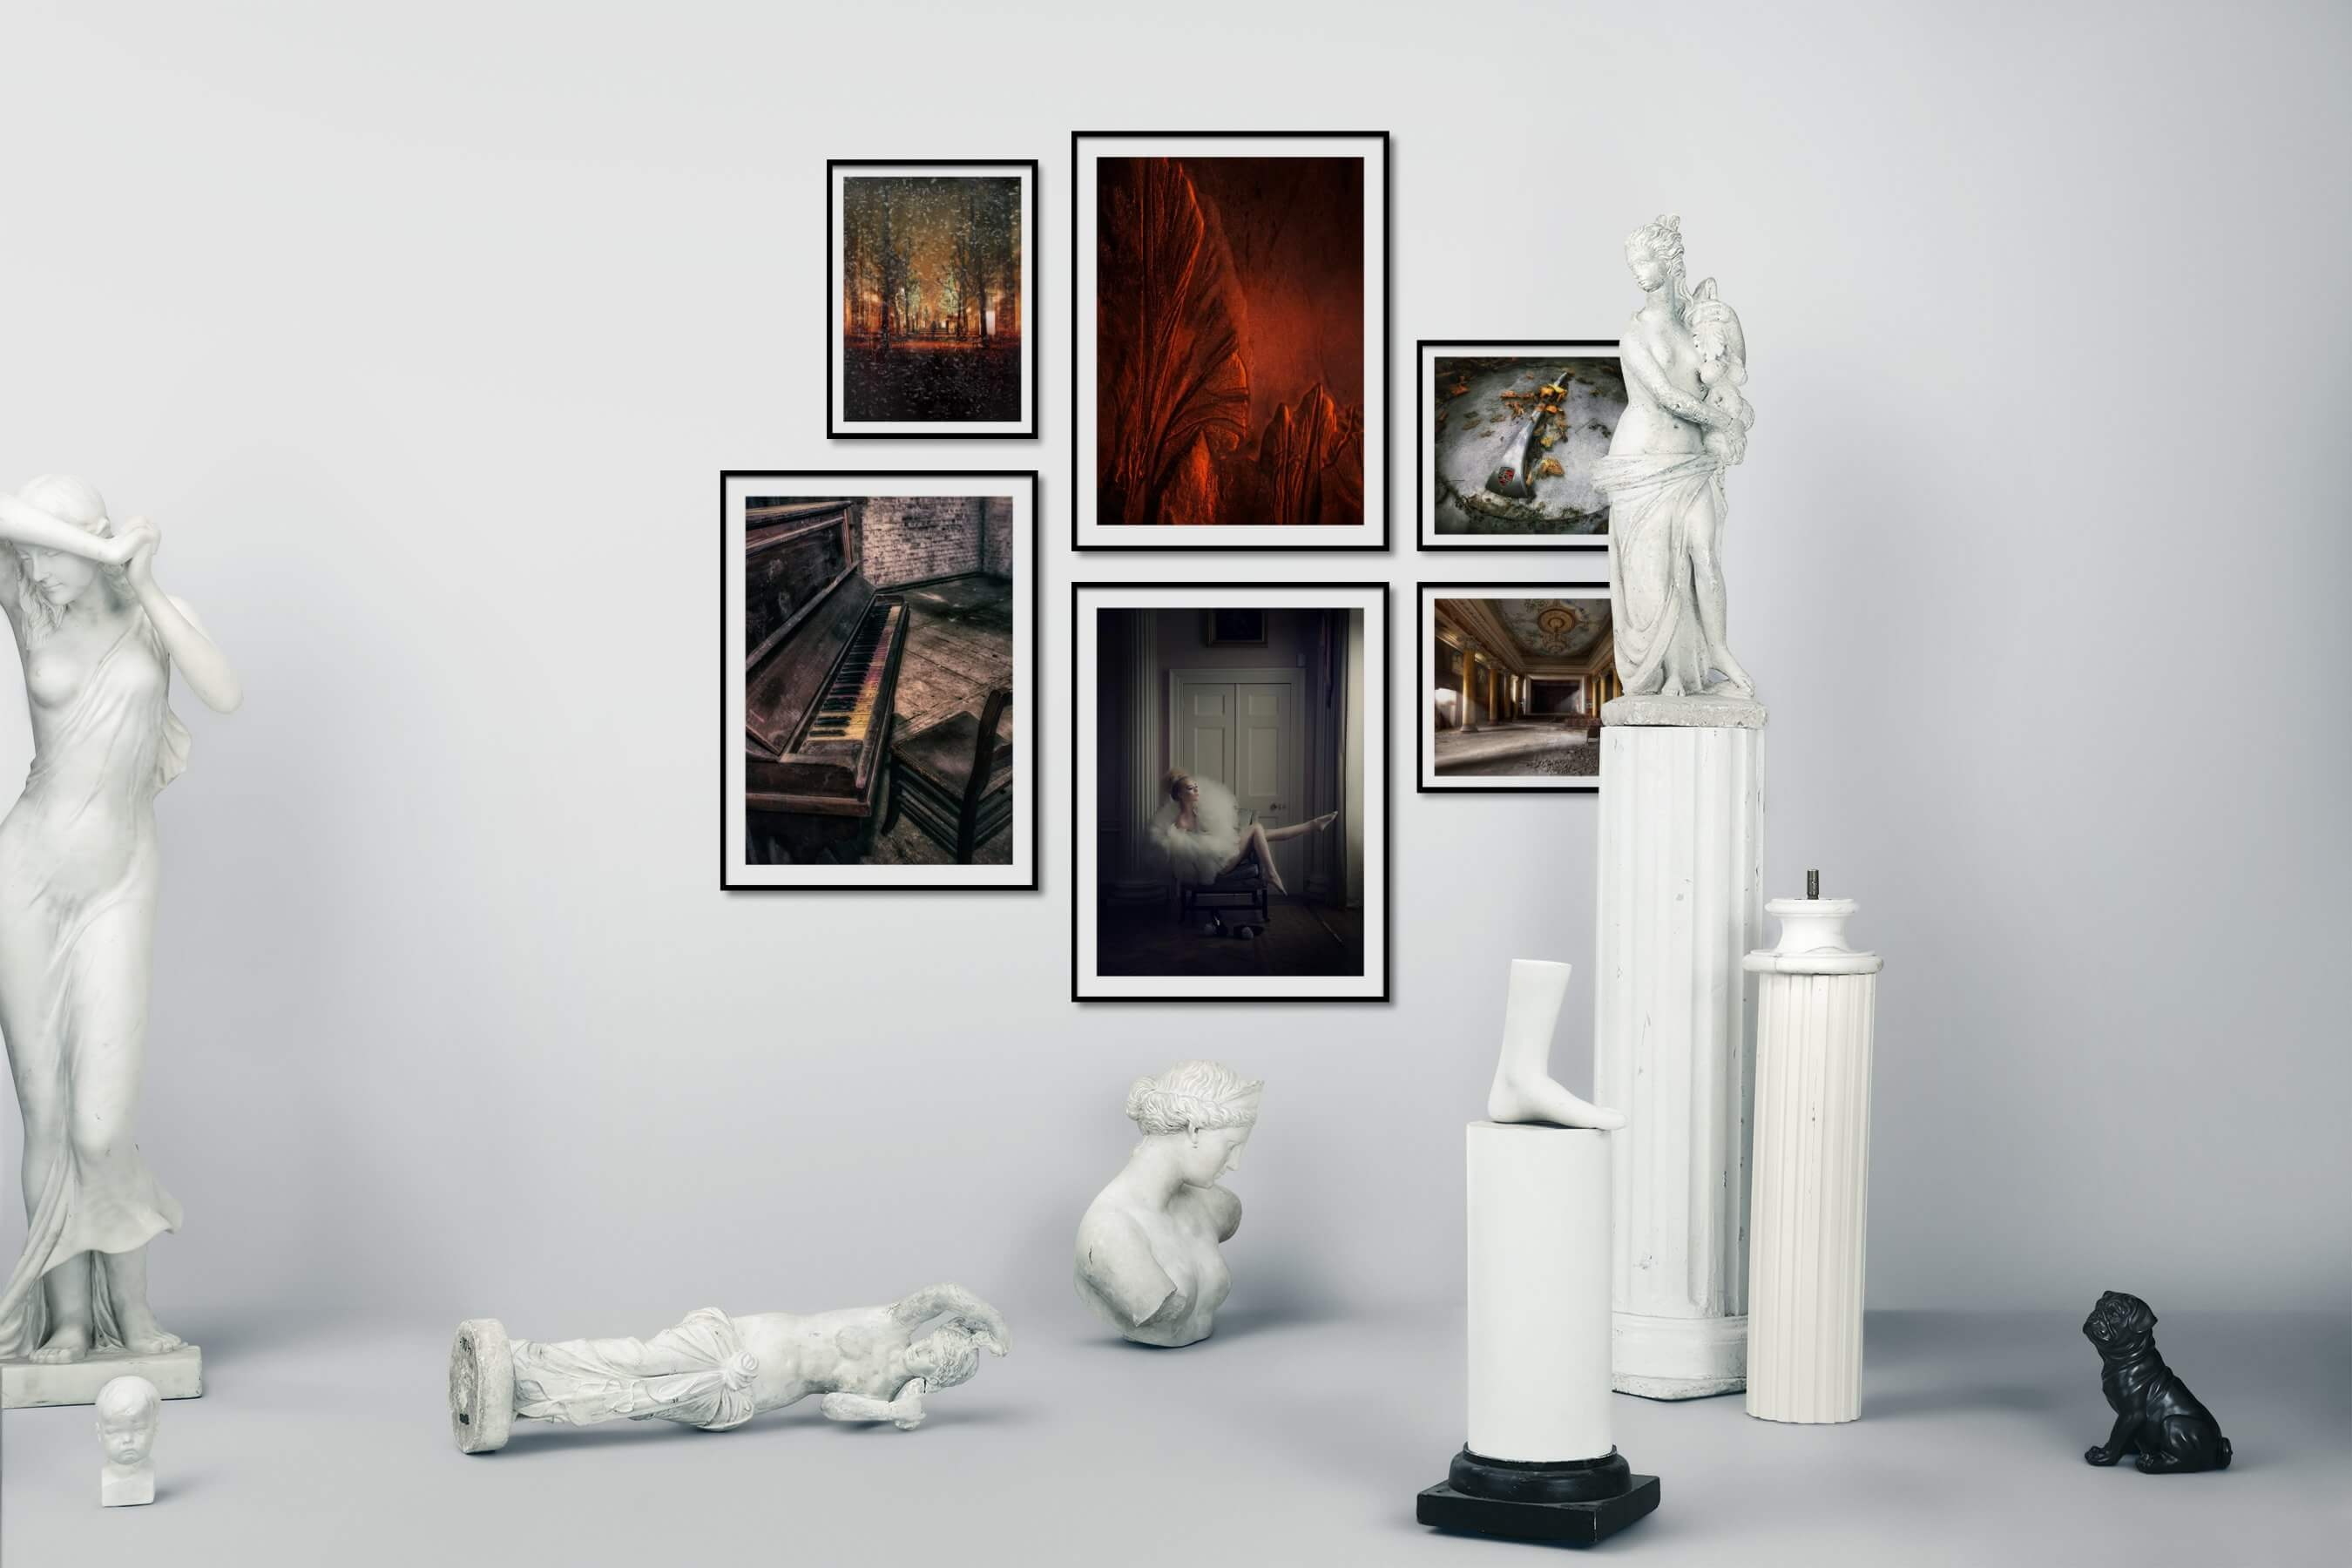 Gallery wall idea with six framed pictures arranged on a wall depicting For the Moderate, City Life, Nature, Vintage, and Fashion & Beauty